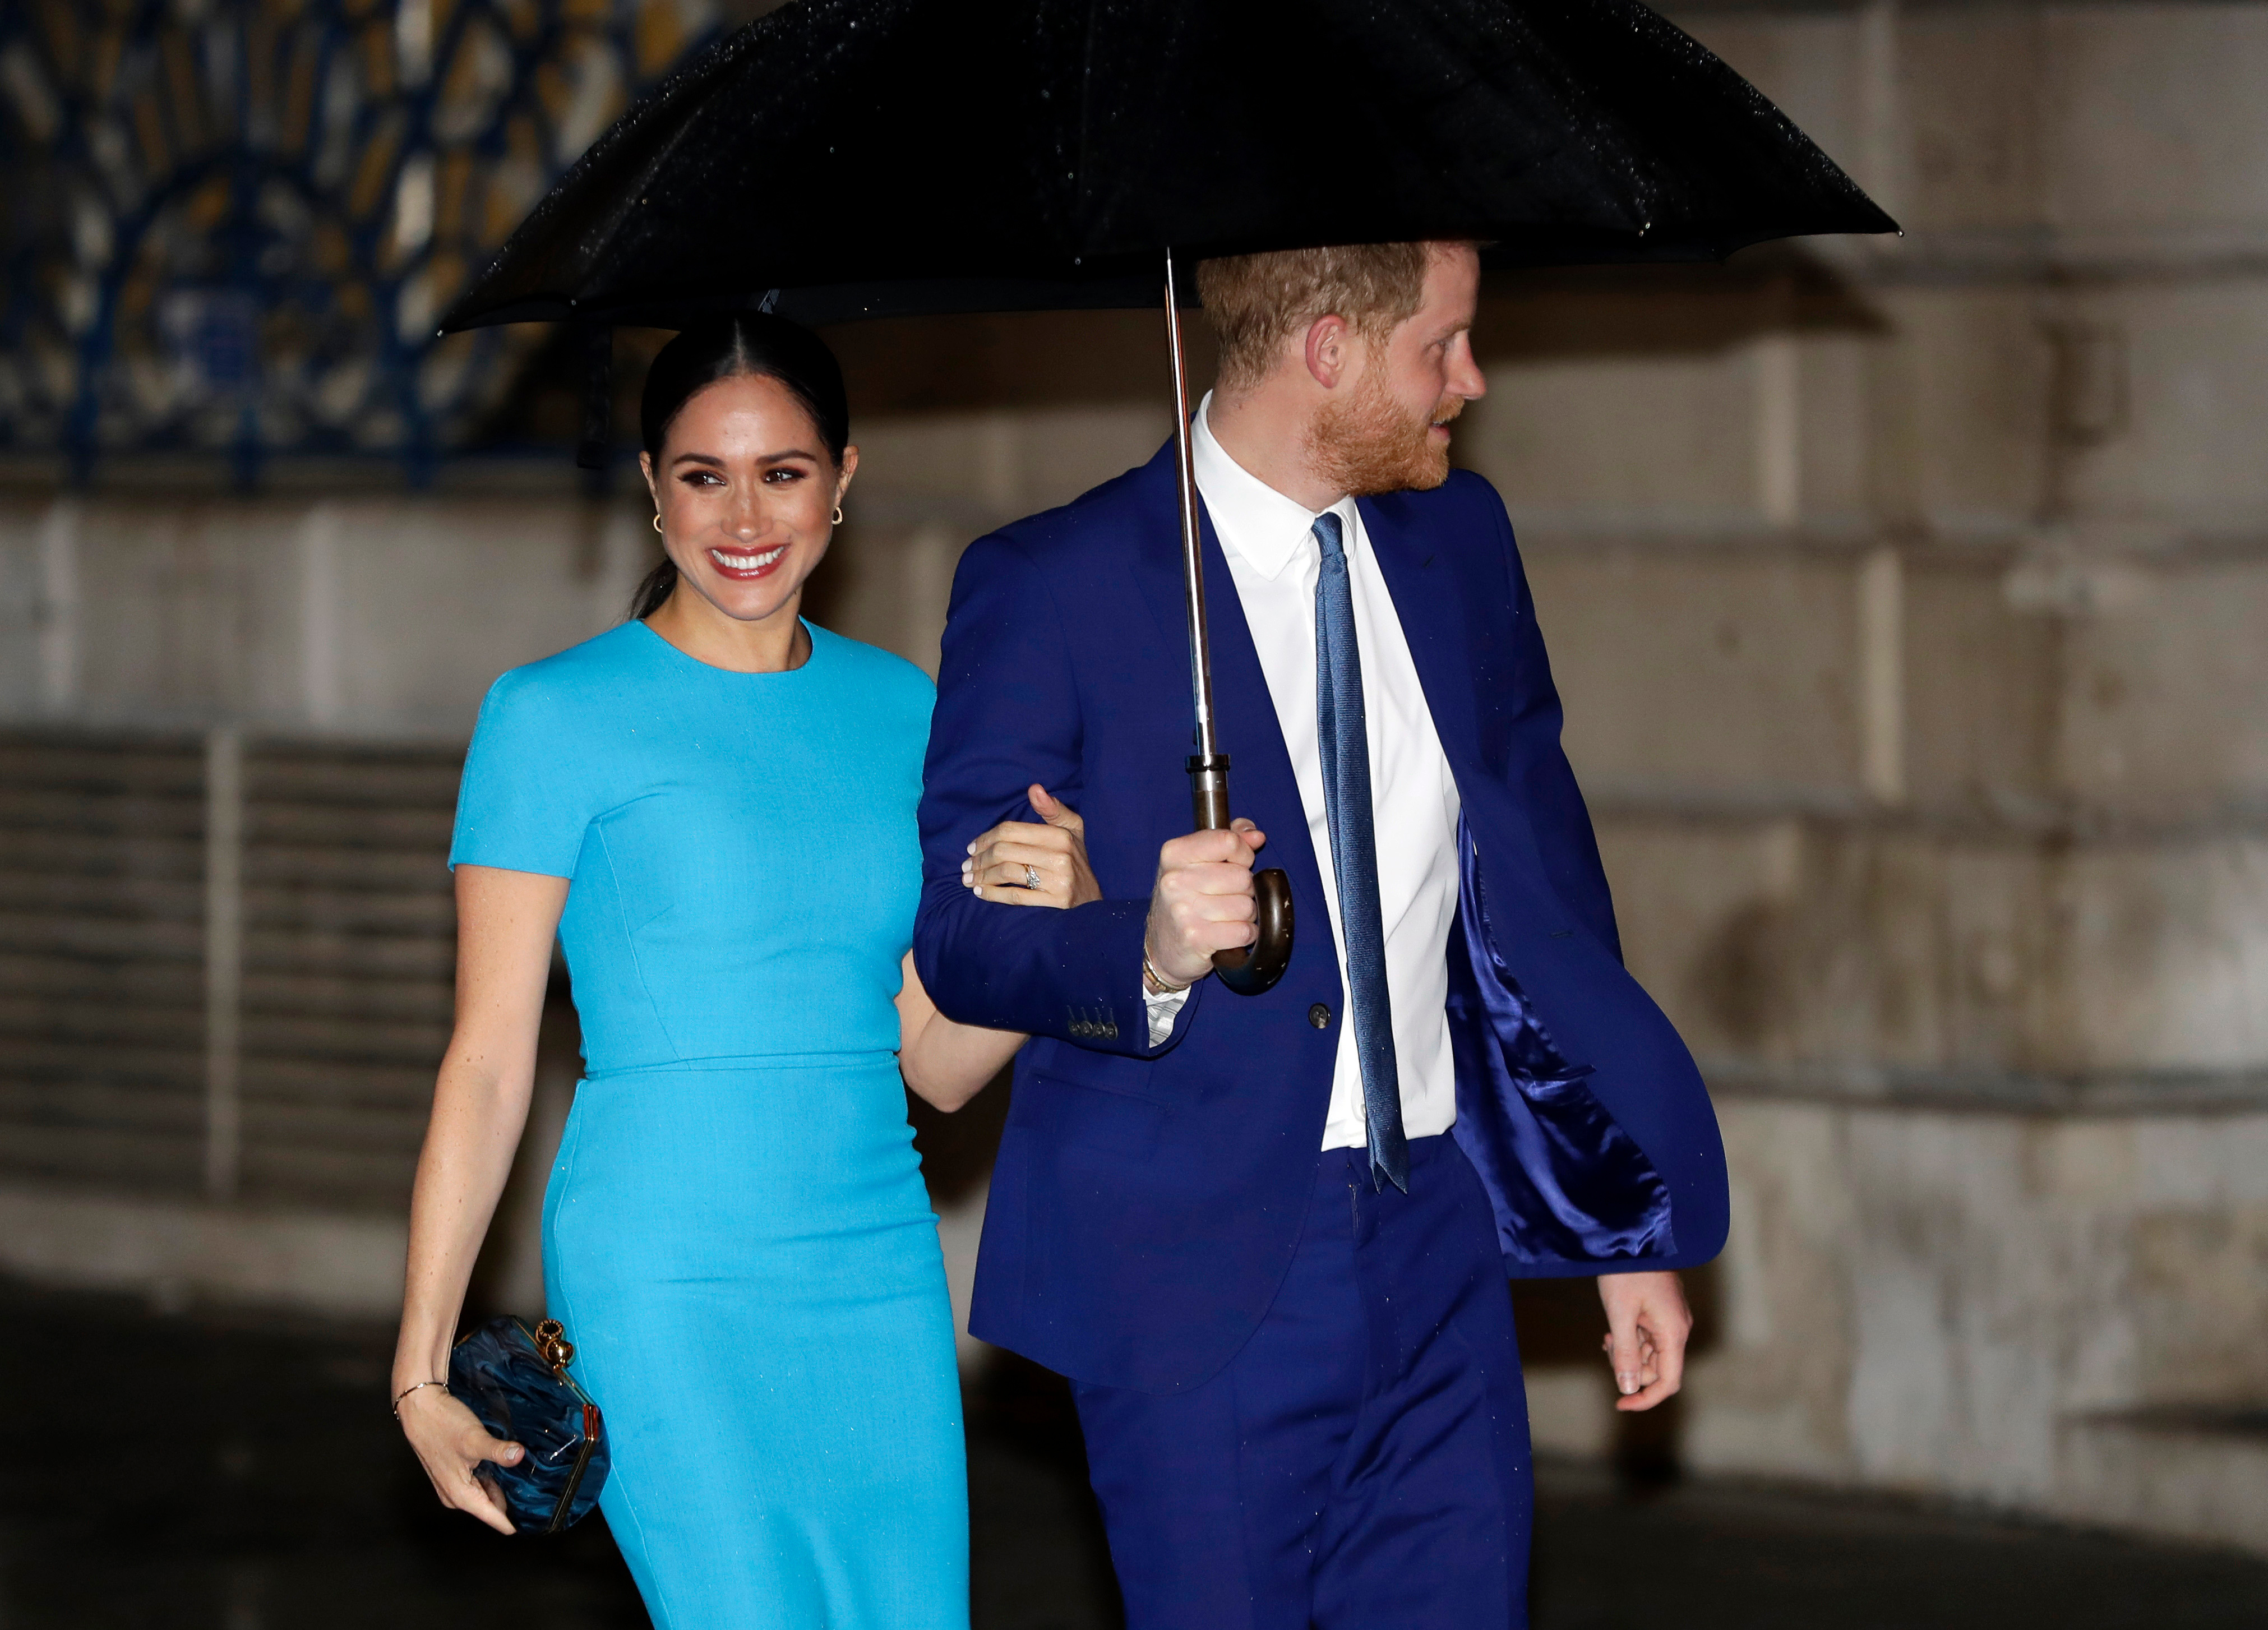 The Duke and Duchess of Sussex Make First Public Appearance Since Megxit